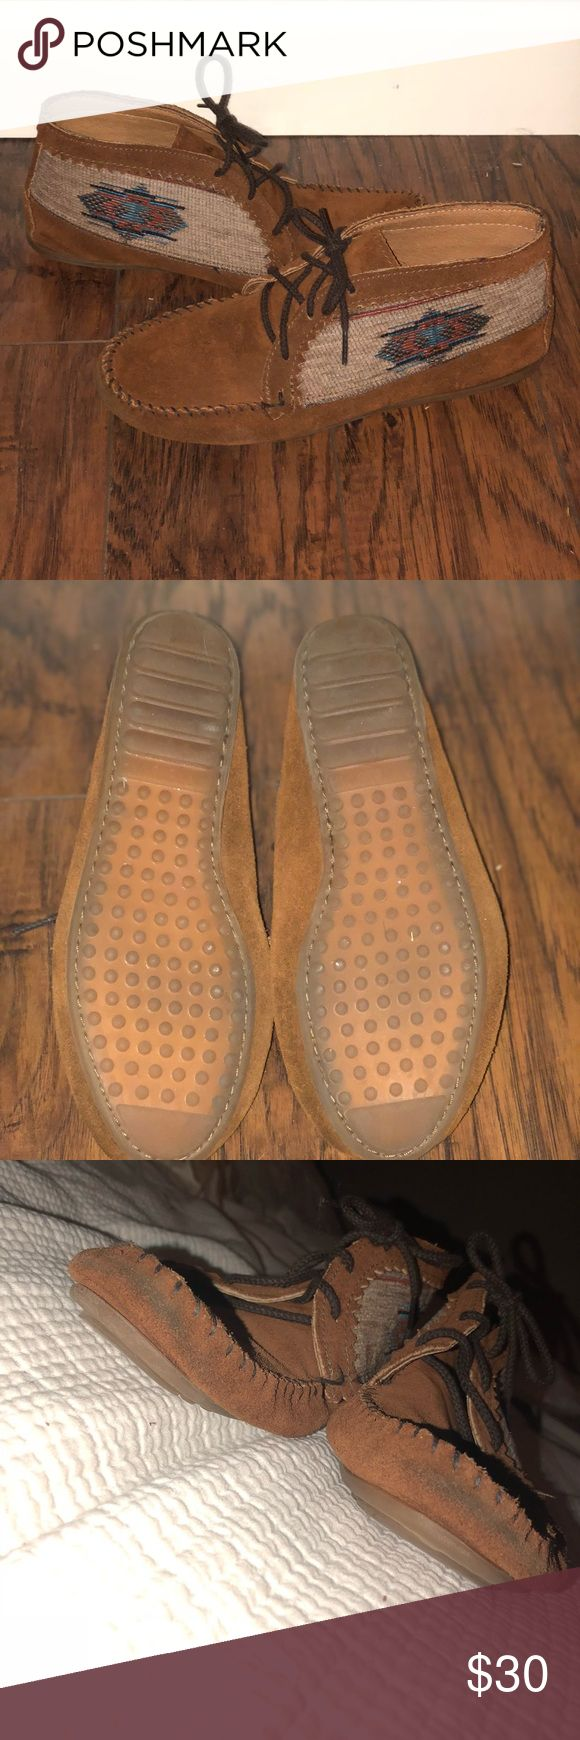 Minnetonka Moccasin Ankle Boot Good condition. Just minor scuffs on the front of the shoe Minnetonka Shoes Moccasins